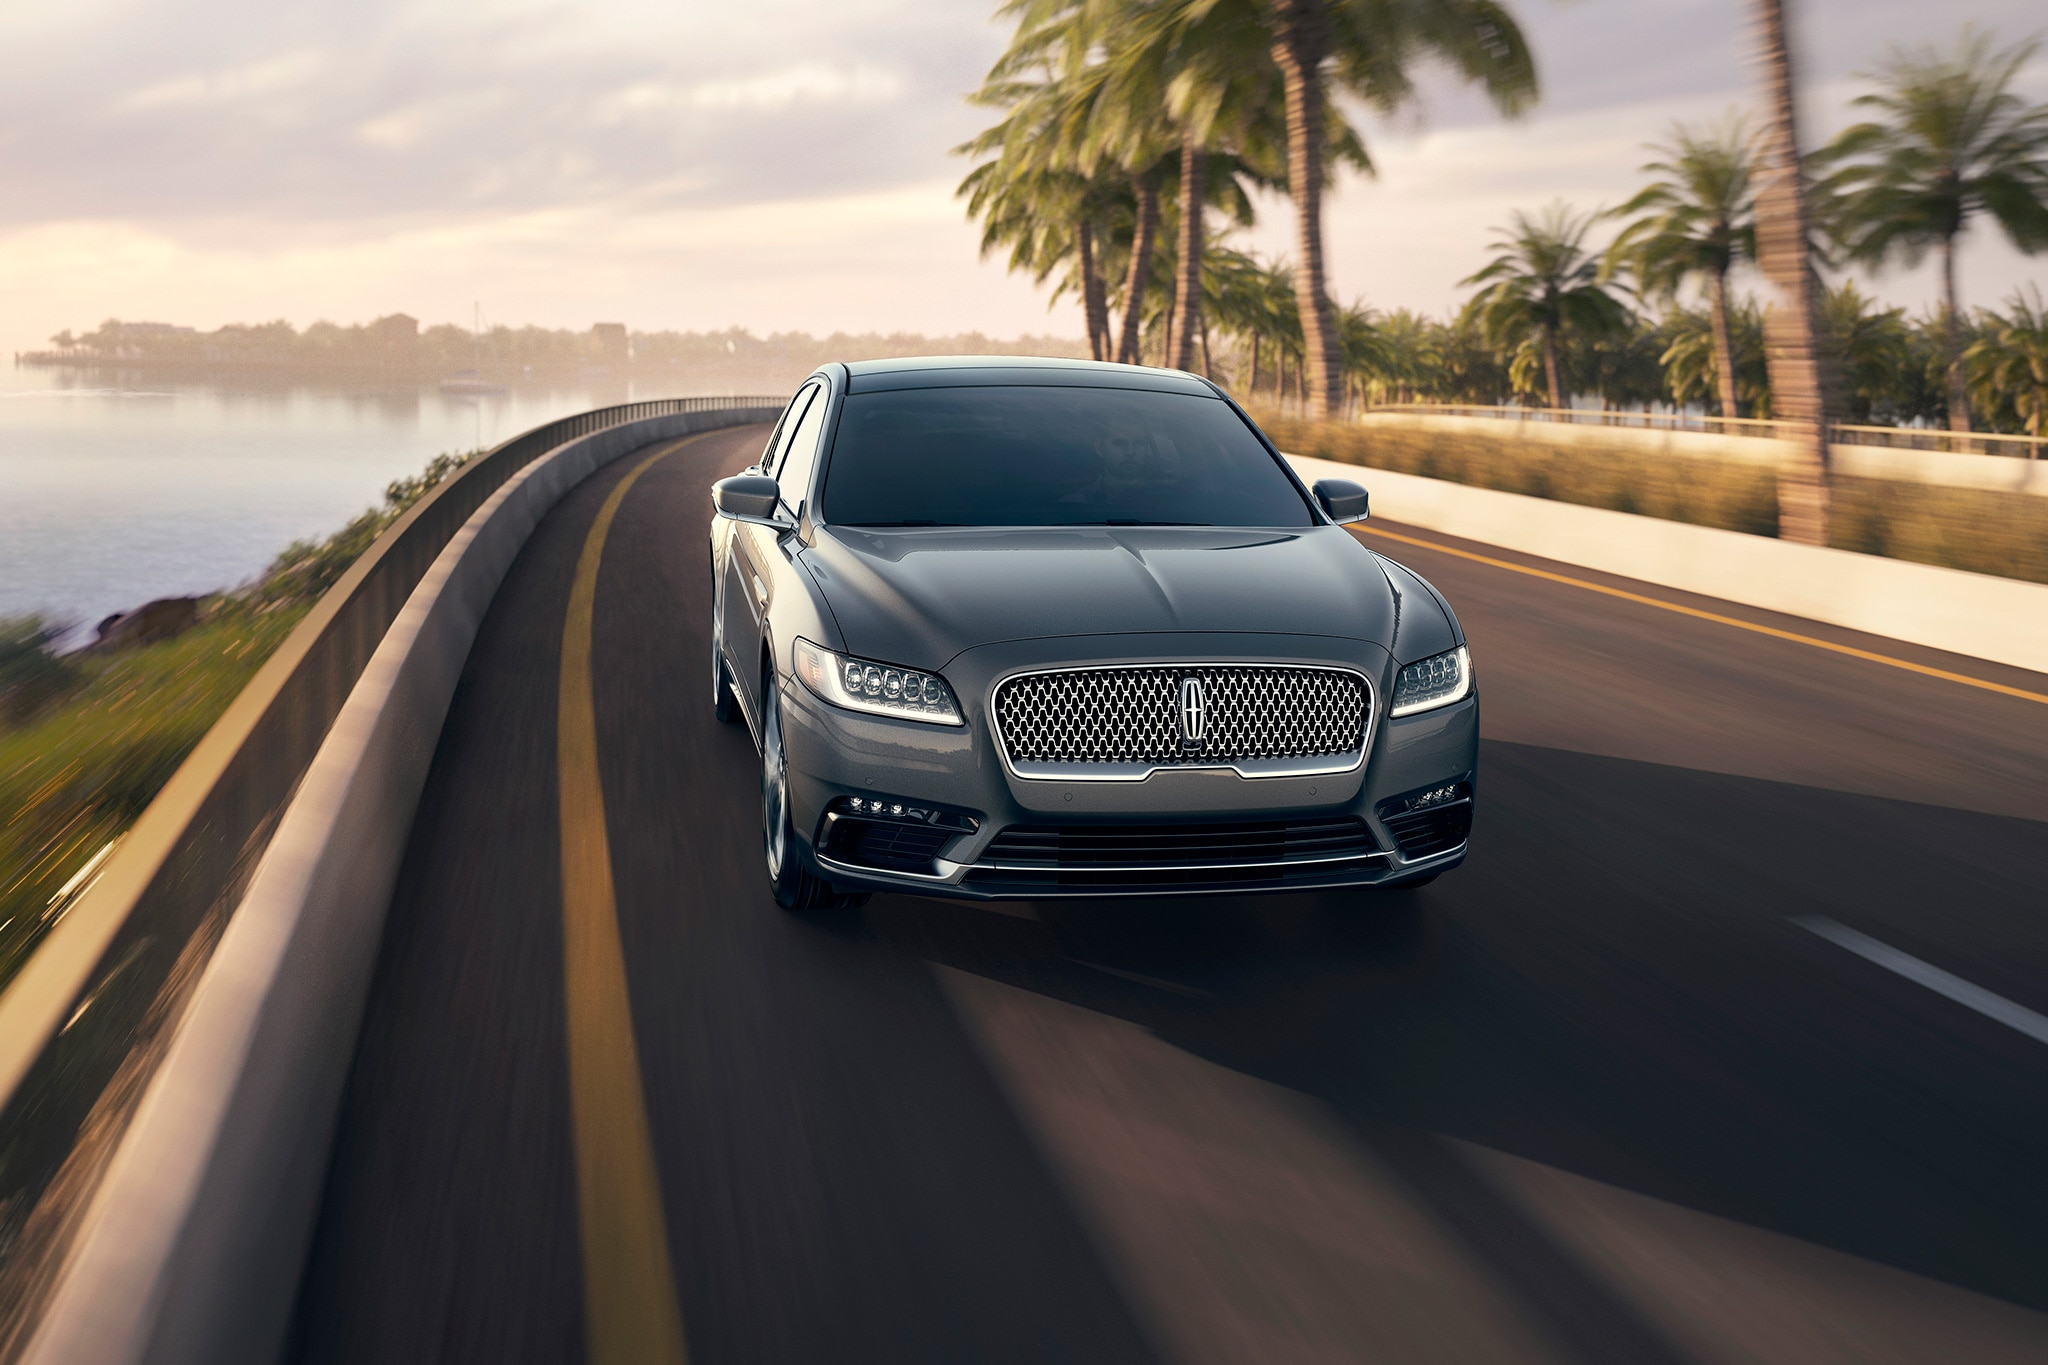 2017-Lincoln-Continental-front-view-in-motion Fascinating Lincoln Continental Used In Hit and Run Cars Trend